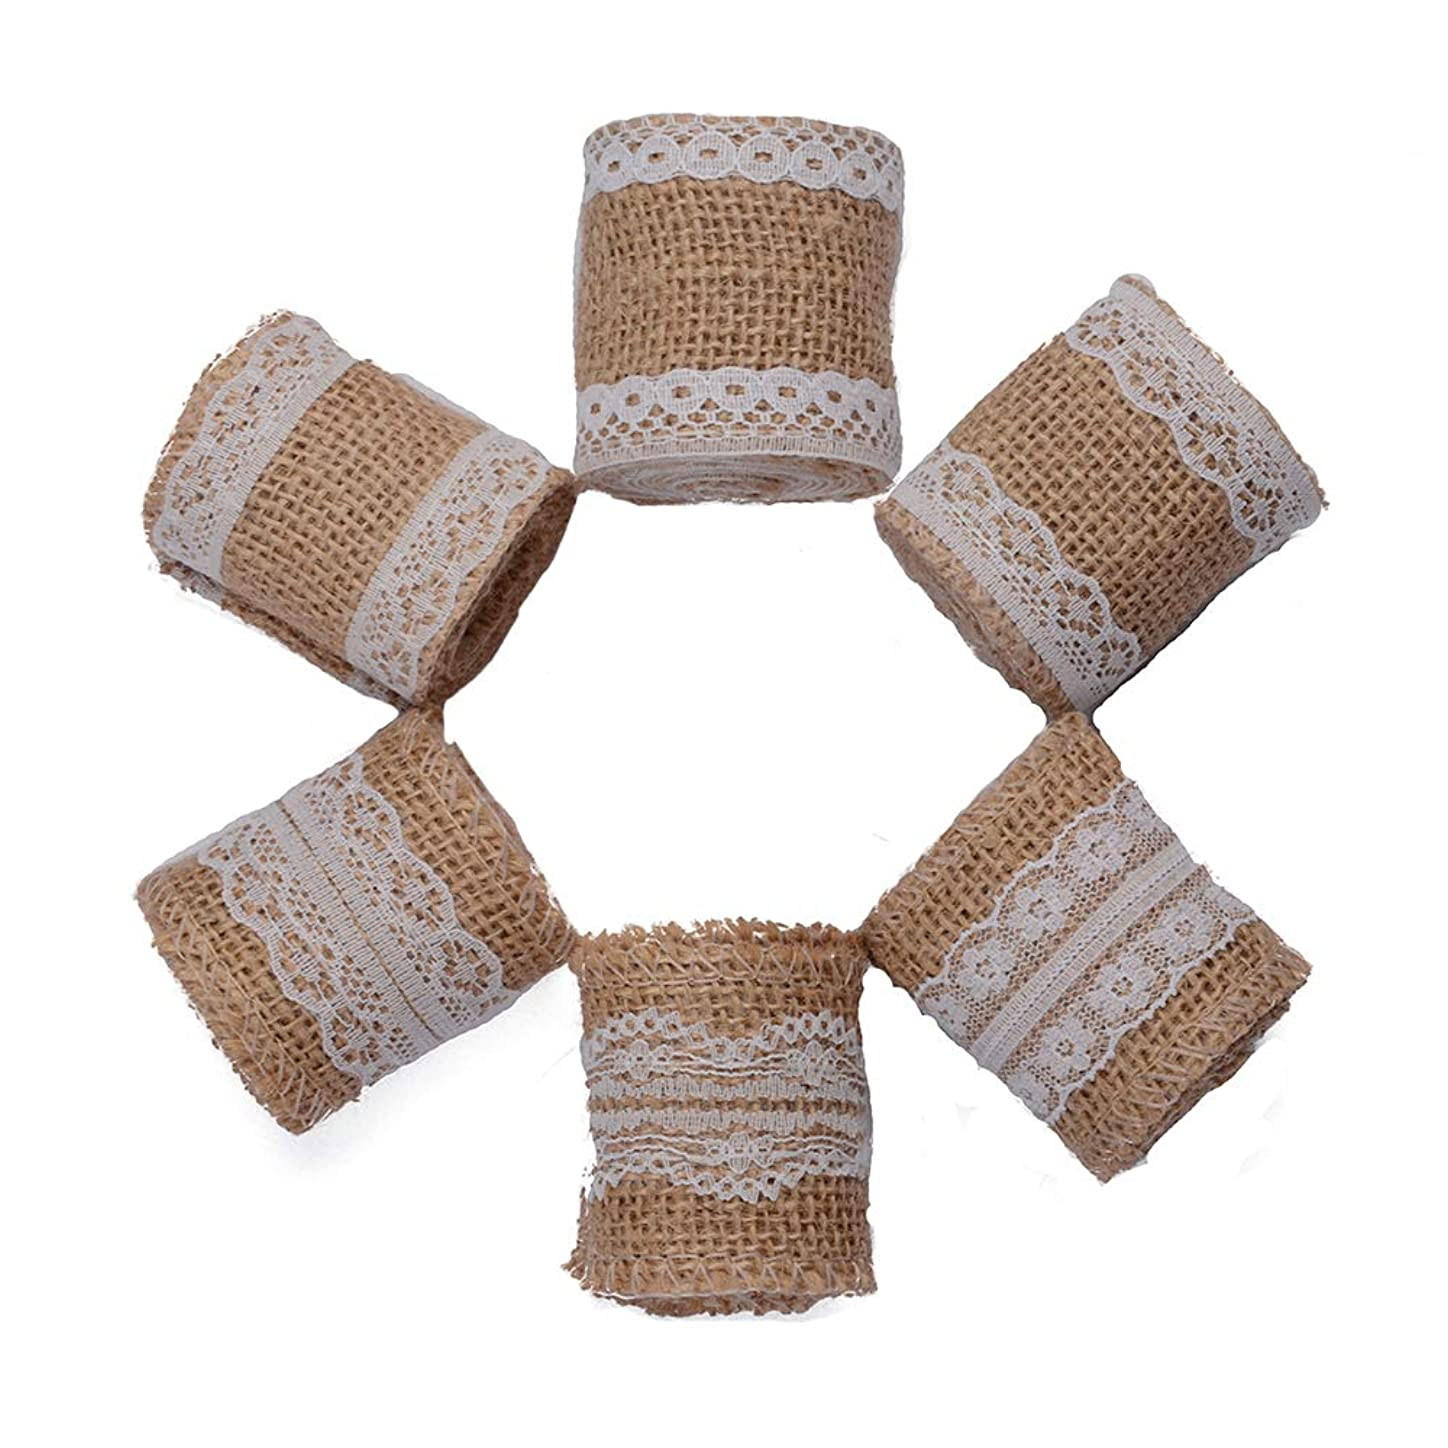 MUZOCT 6Pcs 3.28Feet/1M Natural Burlap Ribbon Roll with White Lace Trims for DIY Handmade Crafts Wedding Decorations kswfyht571294